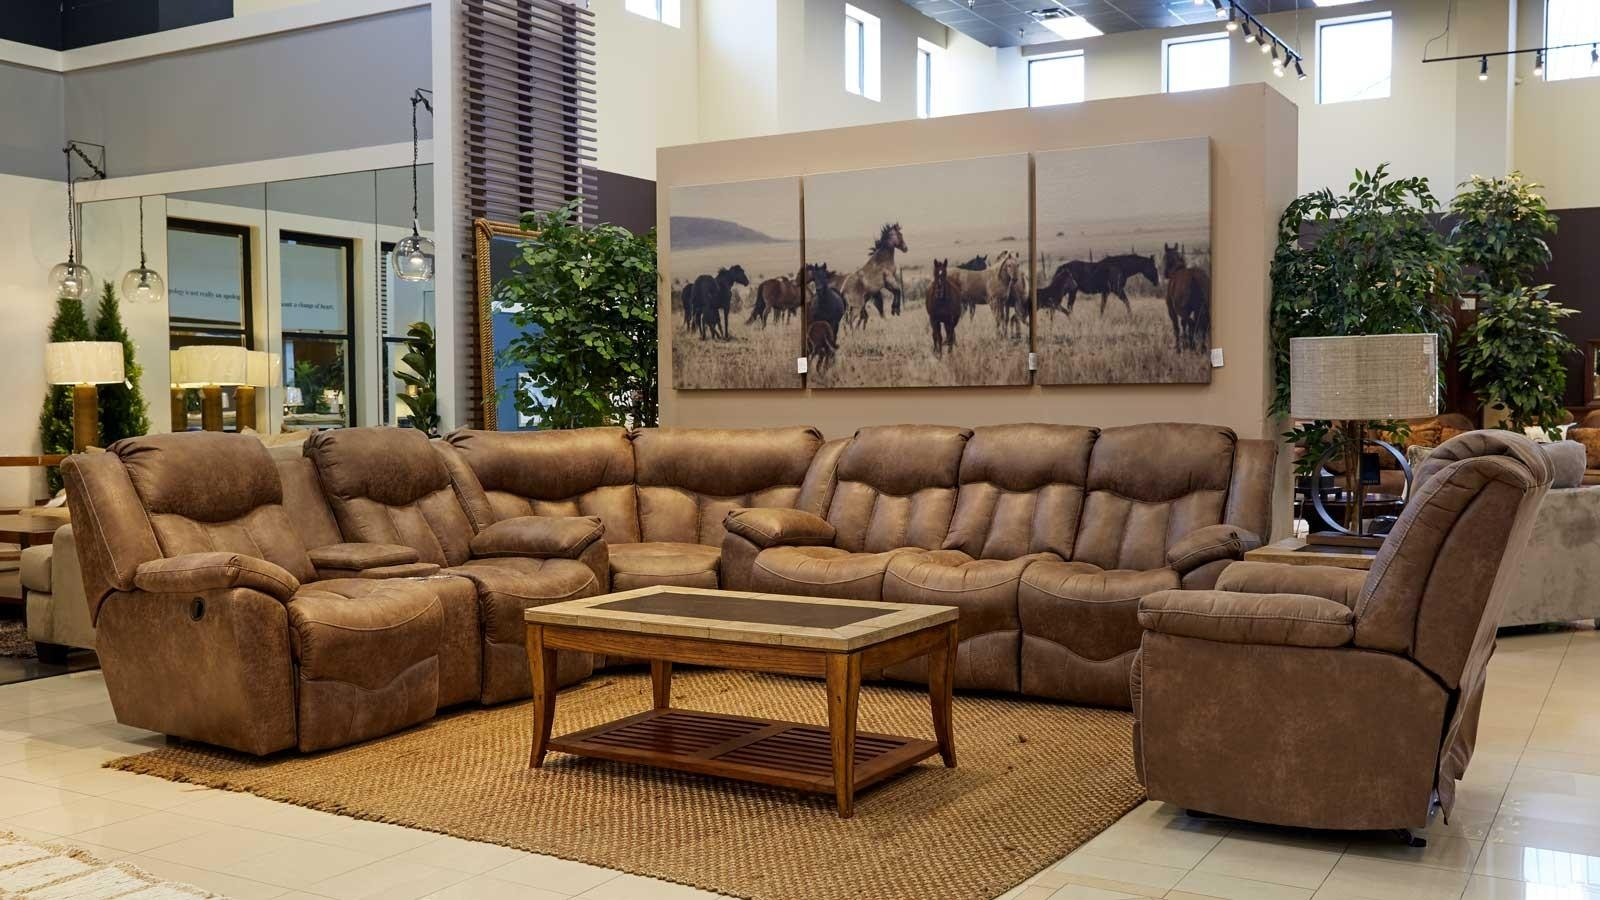 Reclining Sofas, Loveseats & Sectionals | With Regard To Sofas And Loveseats (Image 6 of 20)